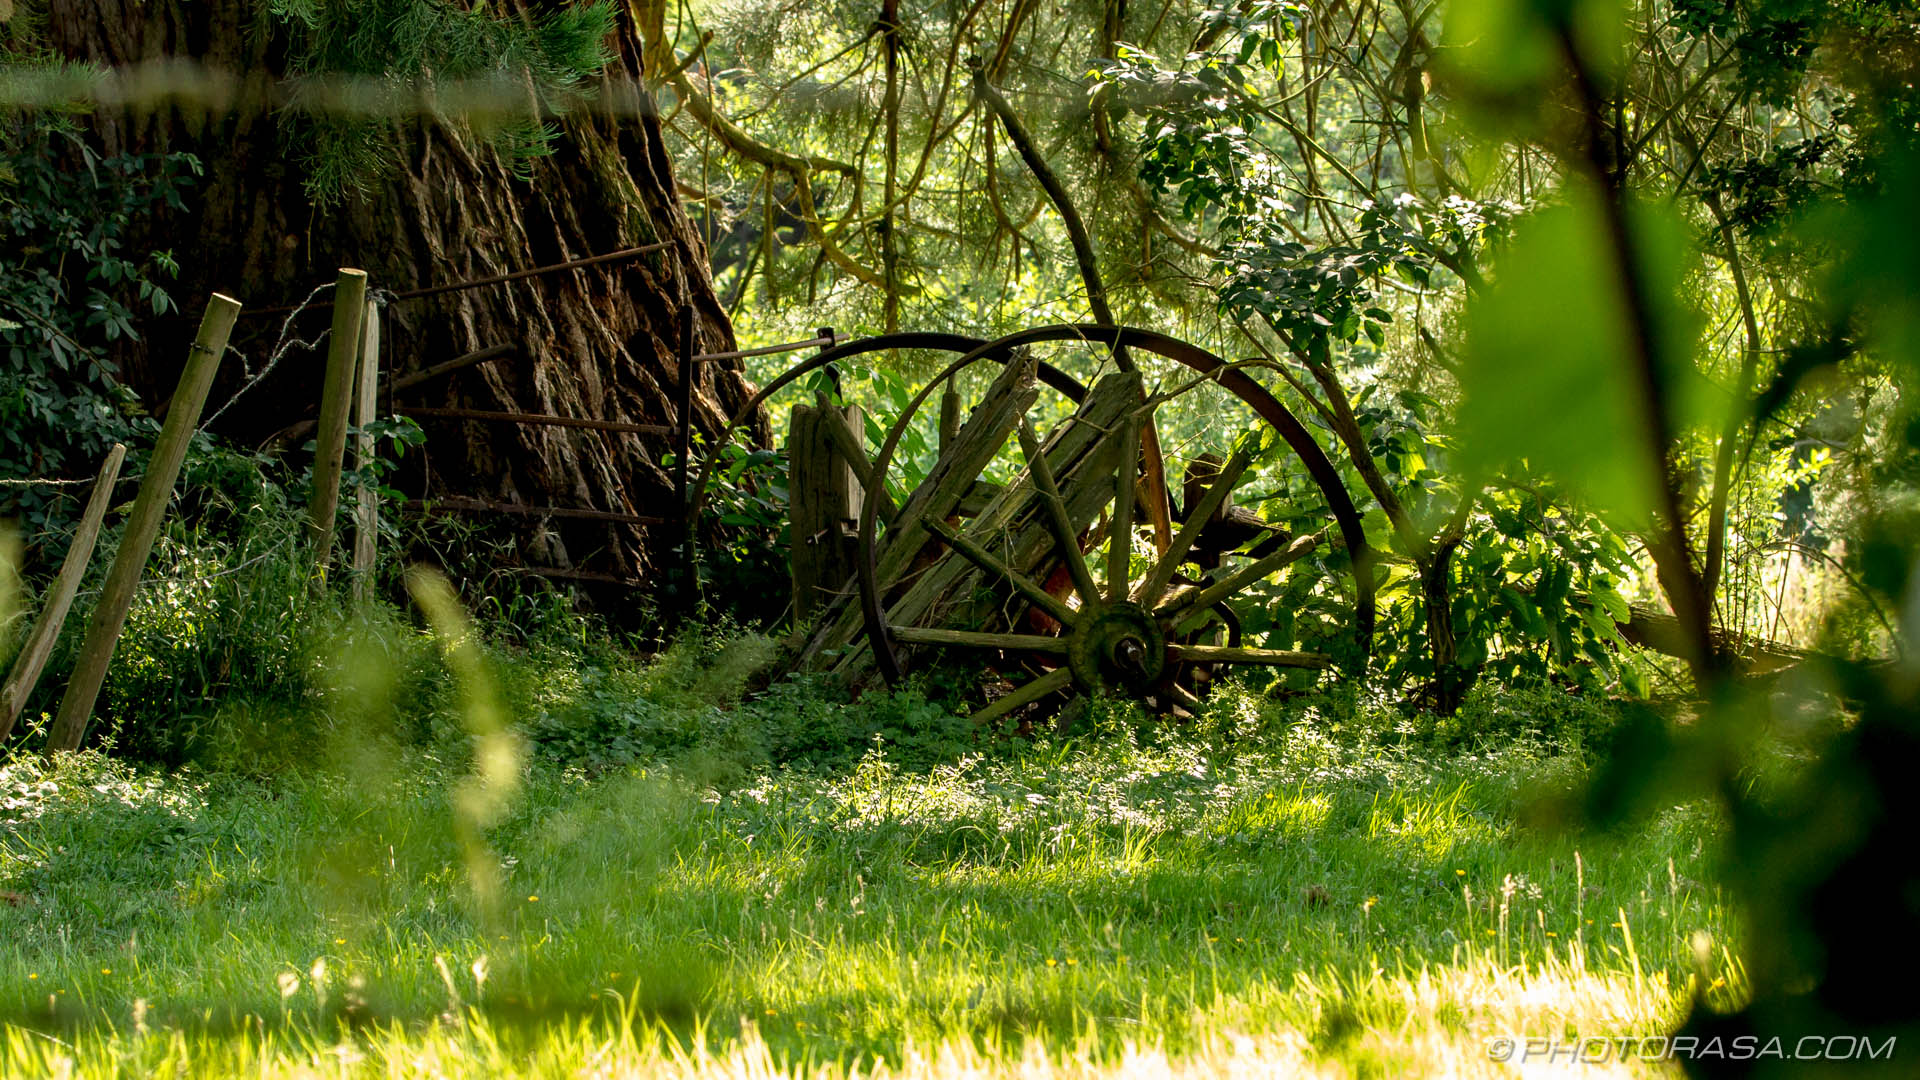 http://photorasa.com/chiddingstone-castle/broken-old-cart/